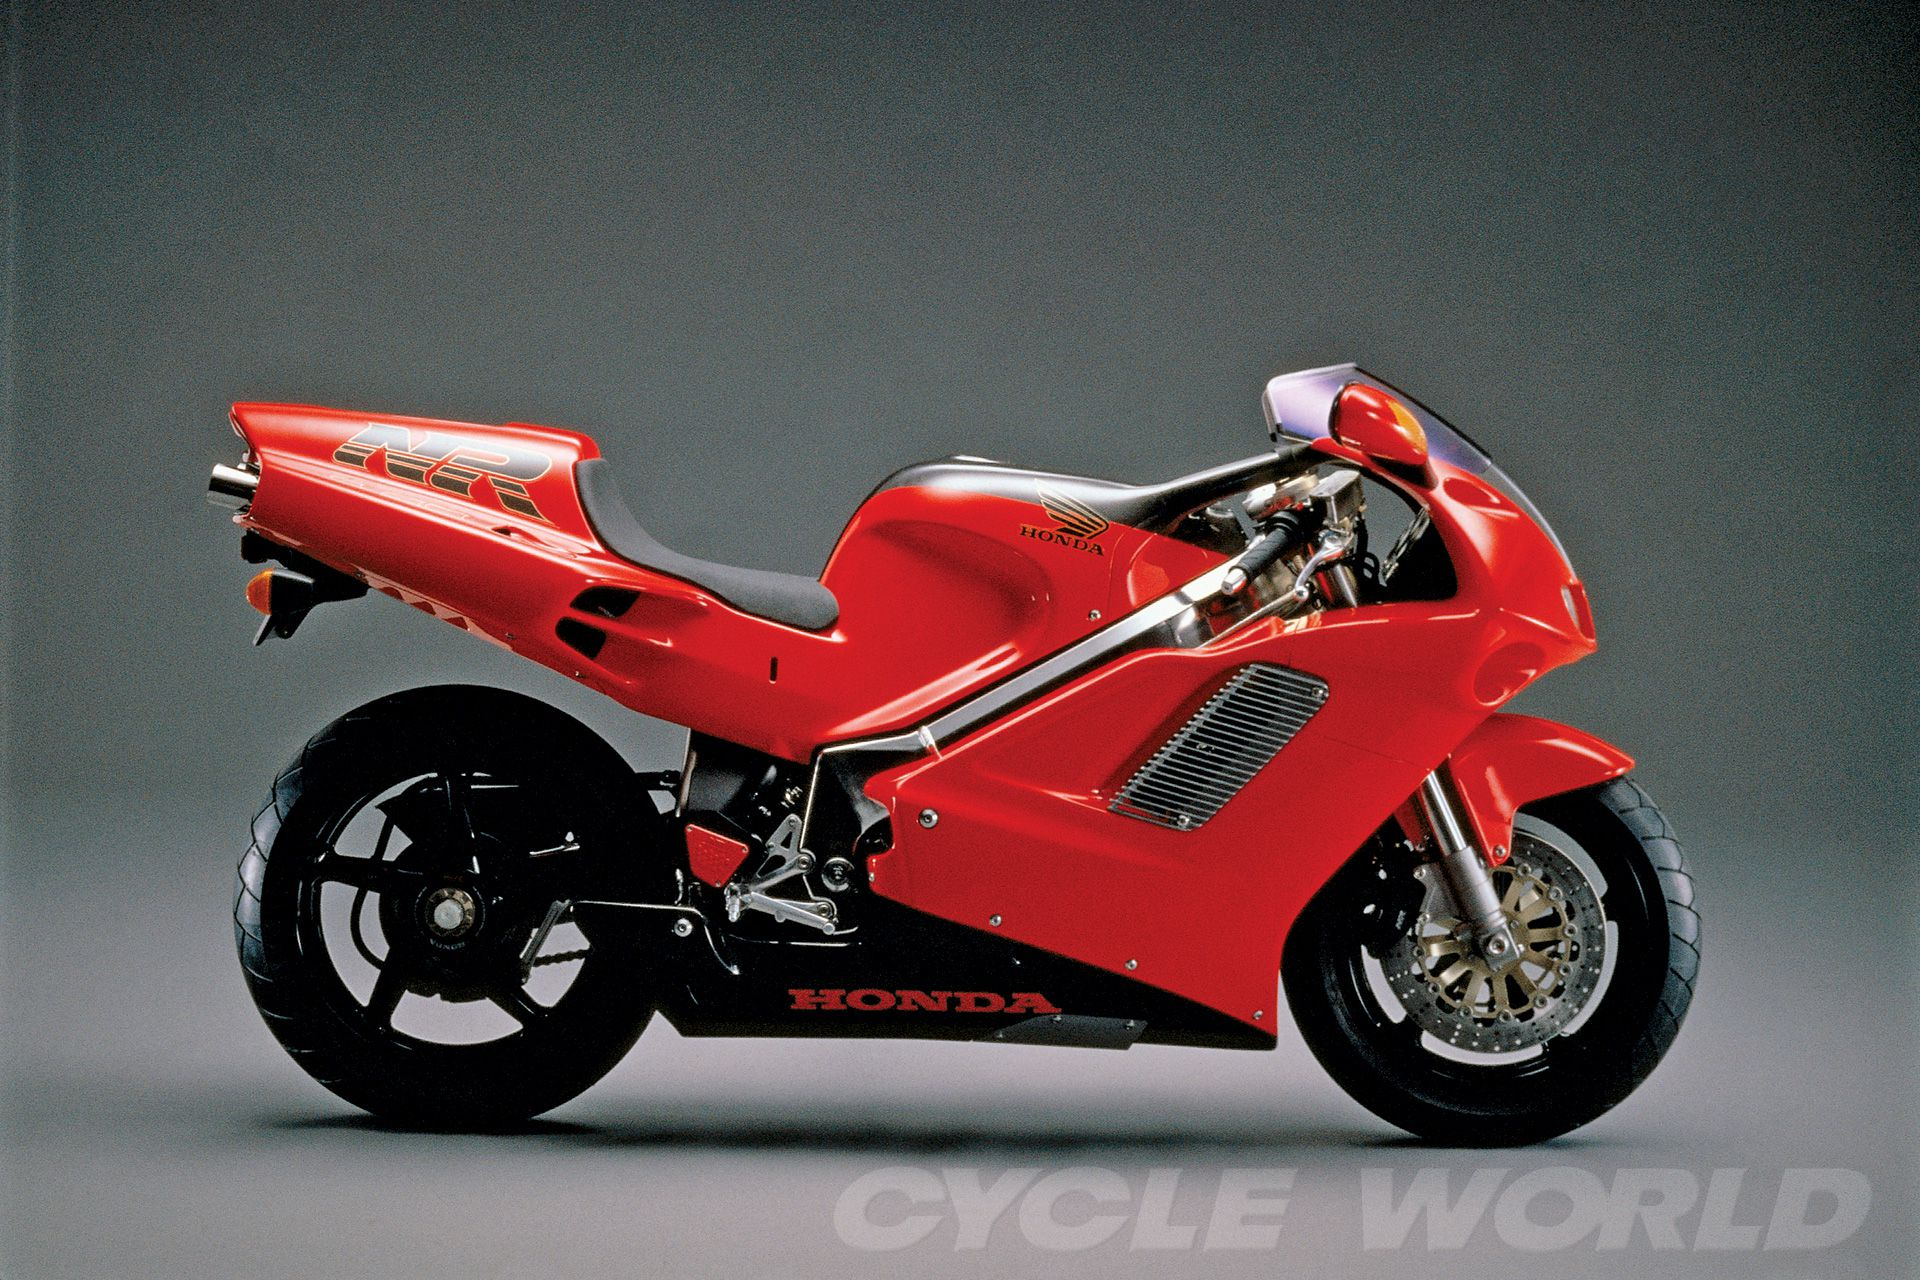 Hard to believe the $60,000 oval-piston 1992 Honda NR750 wasn't just a concept bike.